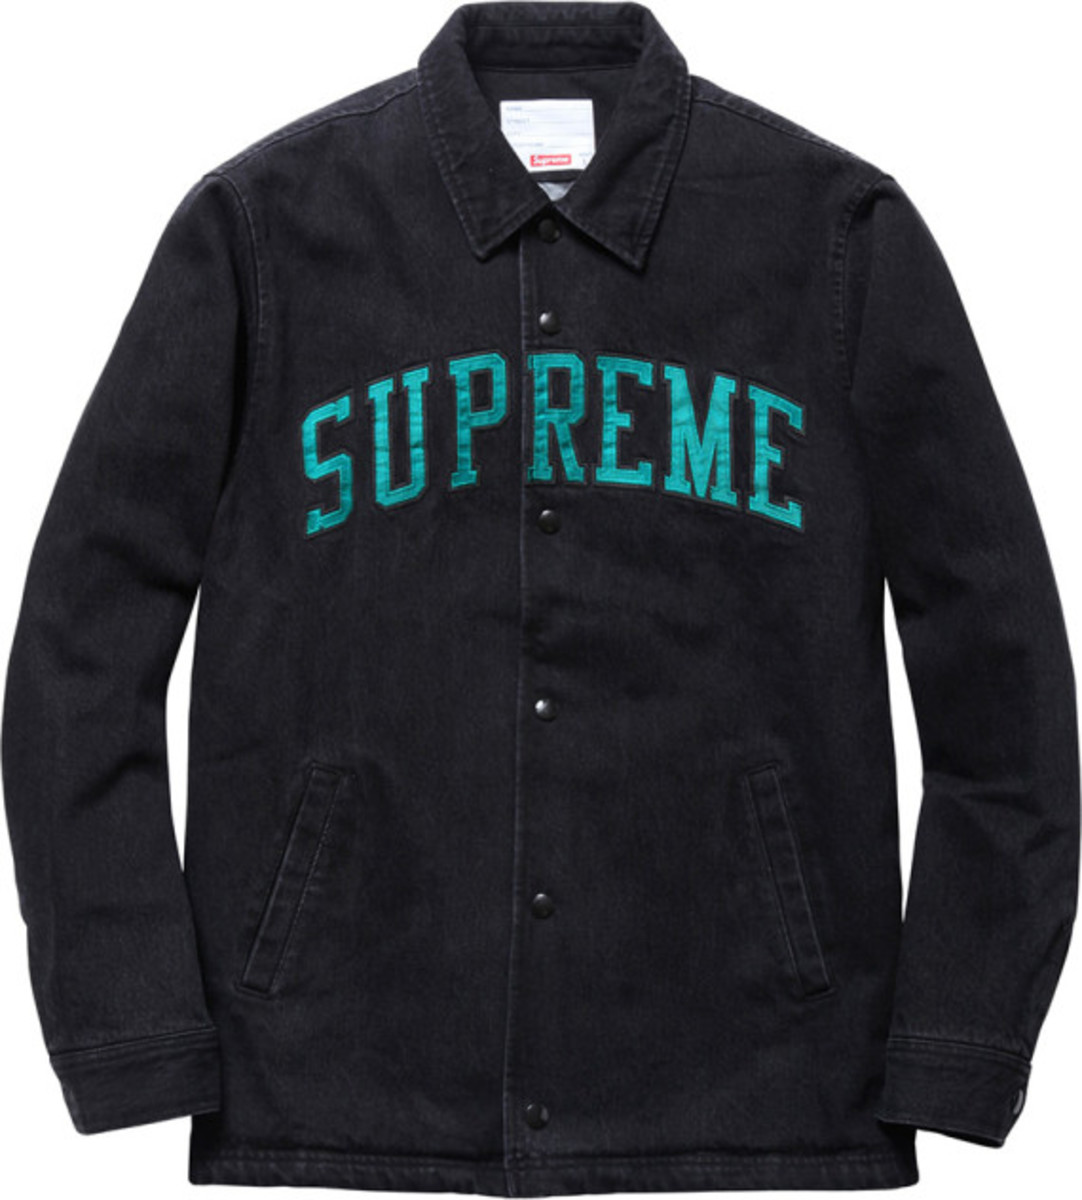 supreme-fall-winter-2013-outerwear-collection-53